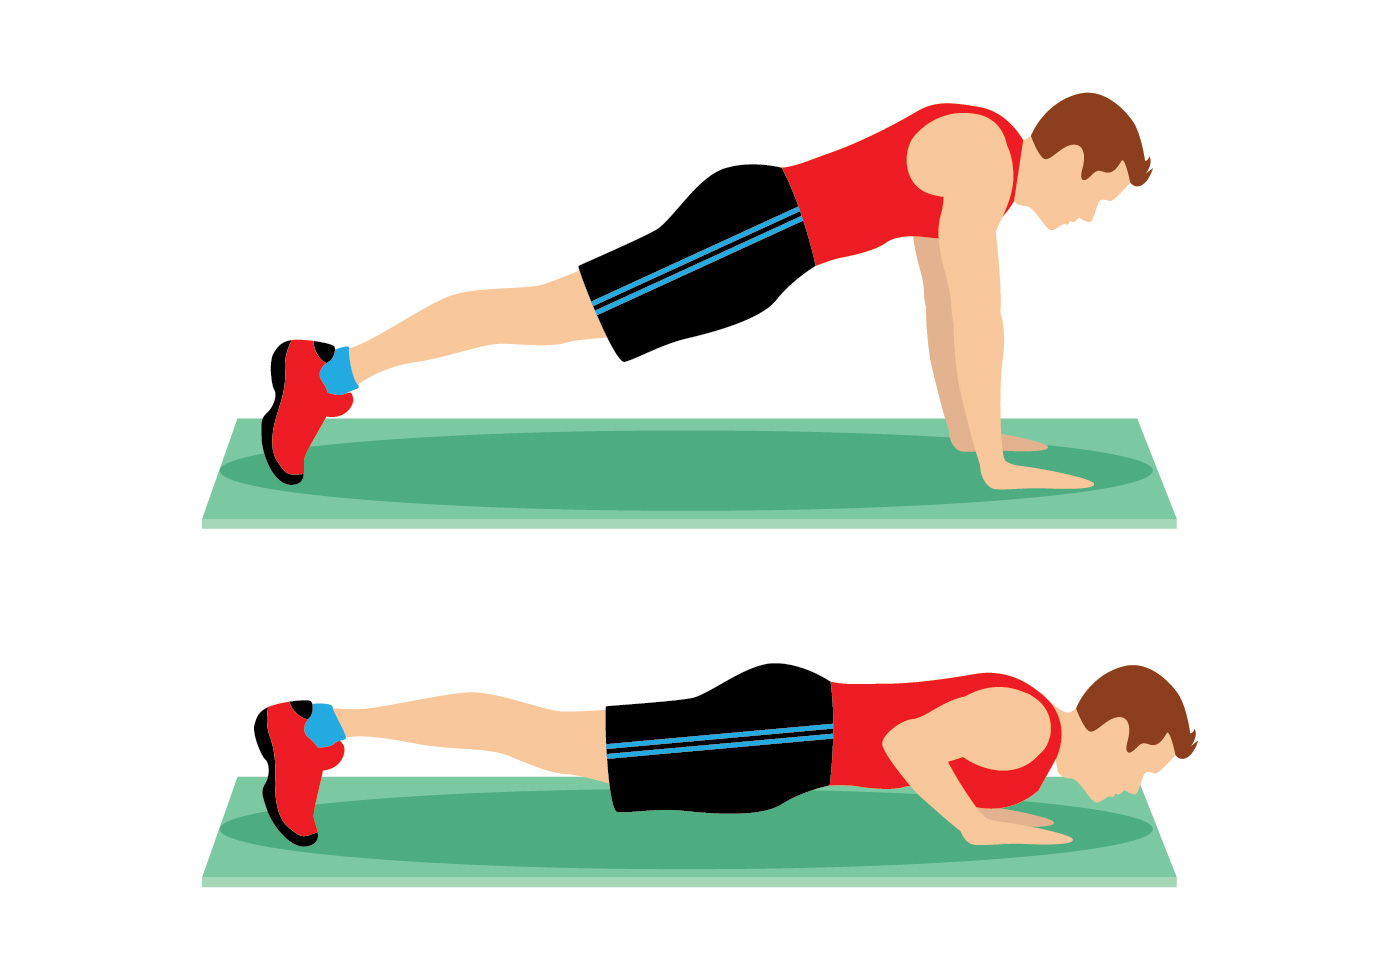 Push Up Pose Vector - Download Free Vector Art, Stock ...